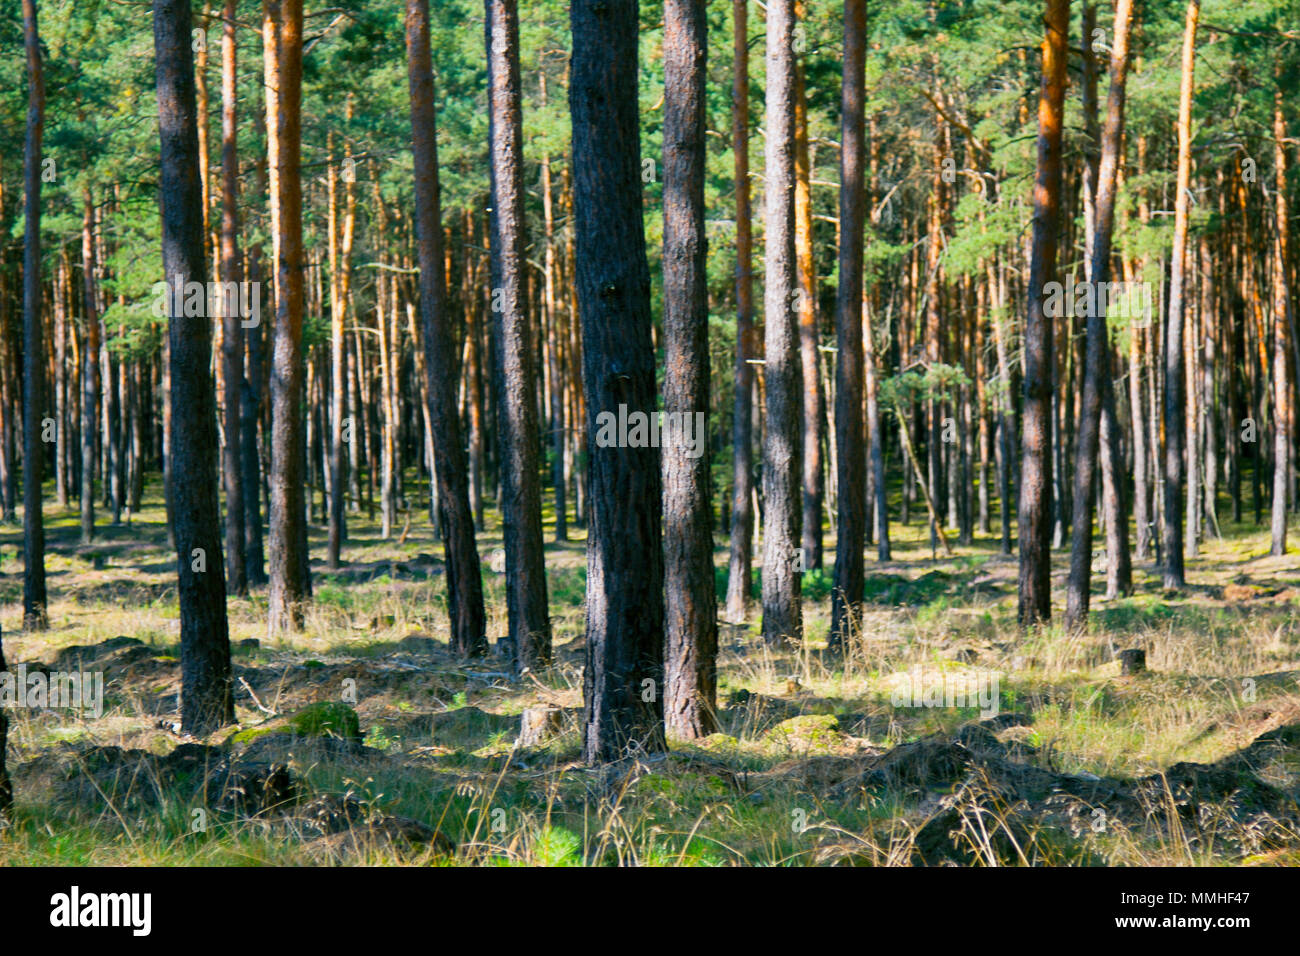 Central European forests. Old natural pine forest in Germany. Stock Photo